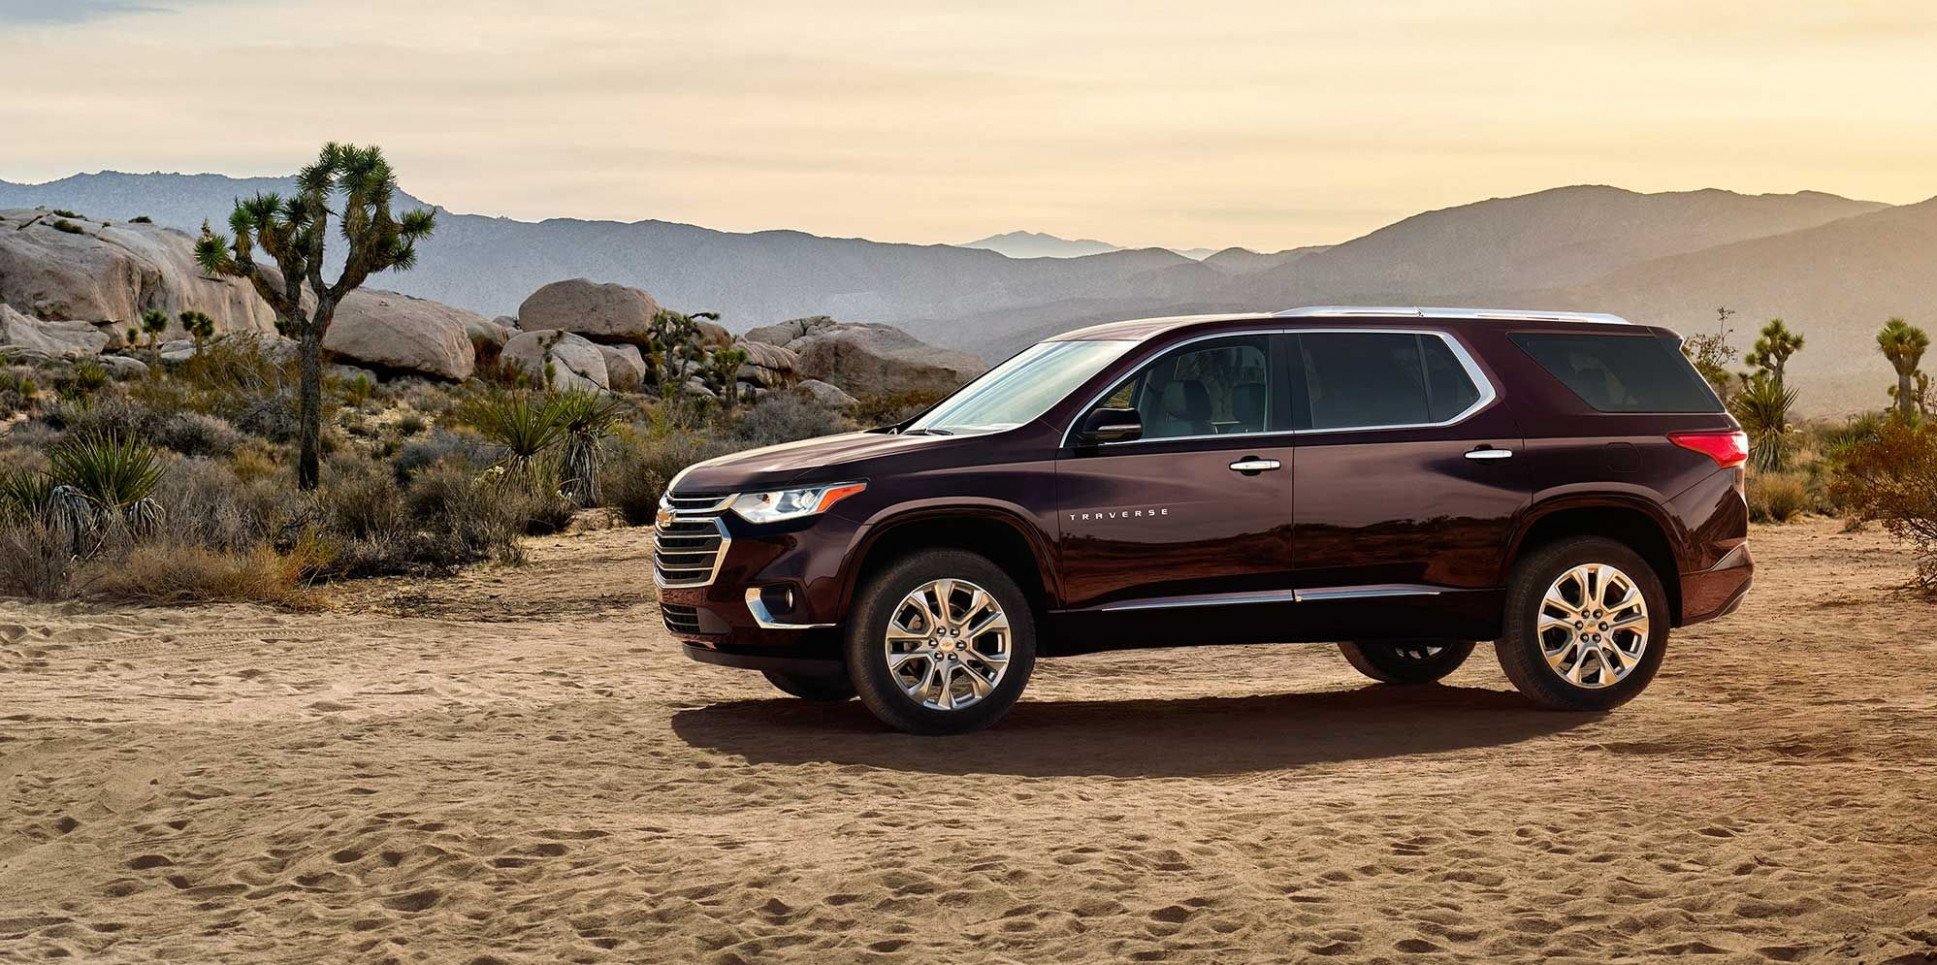 7 Chevrolet Traverse Review, Pricing, and Specs - 2020 chevrolet traverse premier